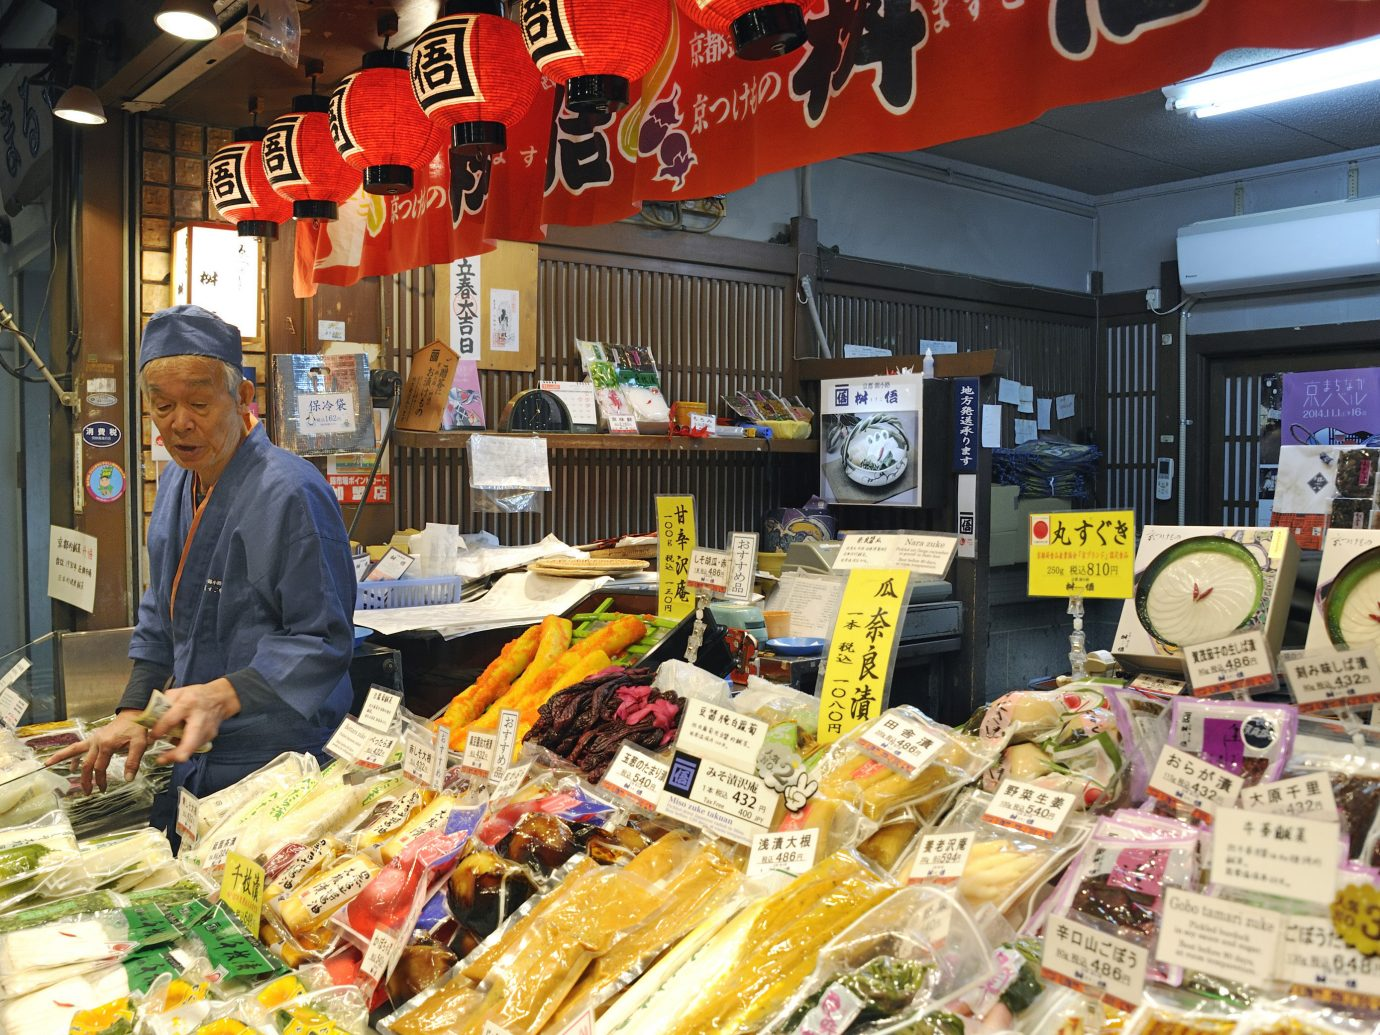 Market in Kyoto, Japan